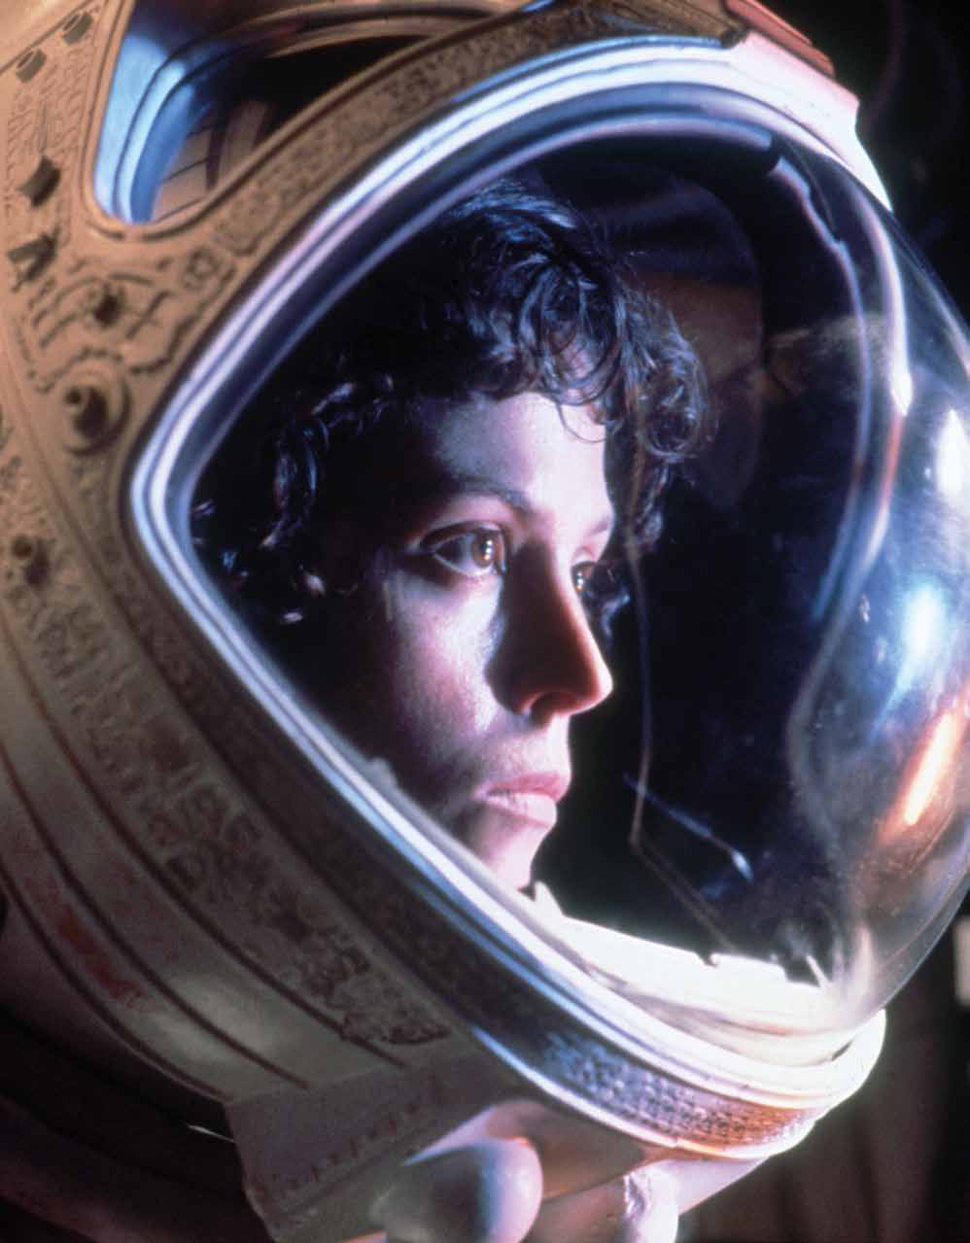 When she was cast as Flight Lt. Ellen Ripley, the lone survivor of the Nostromo, Sigourney Weaver was a virtually unknown actress with aspirations to become known for her stage work rather than become a movie star. The role would not only propel her to A-list actor status but also establish her as the prototypical kick-ass action heroine of 20th century cinema.